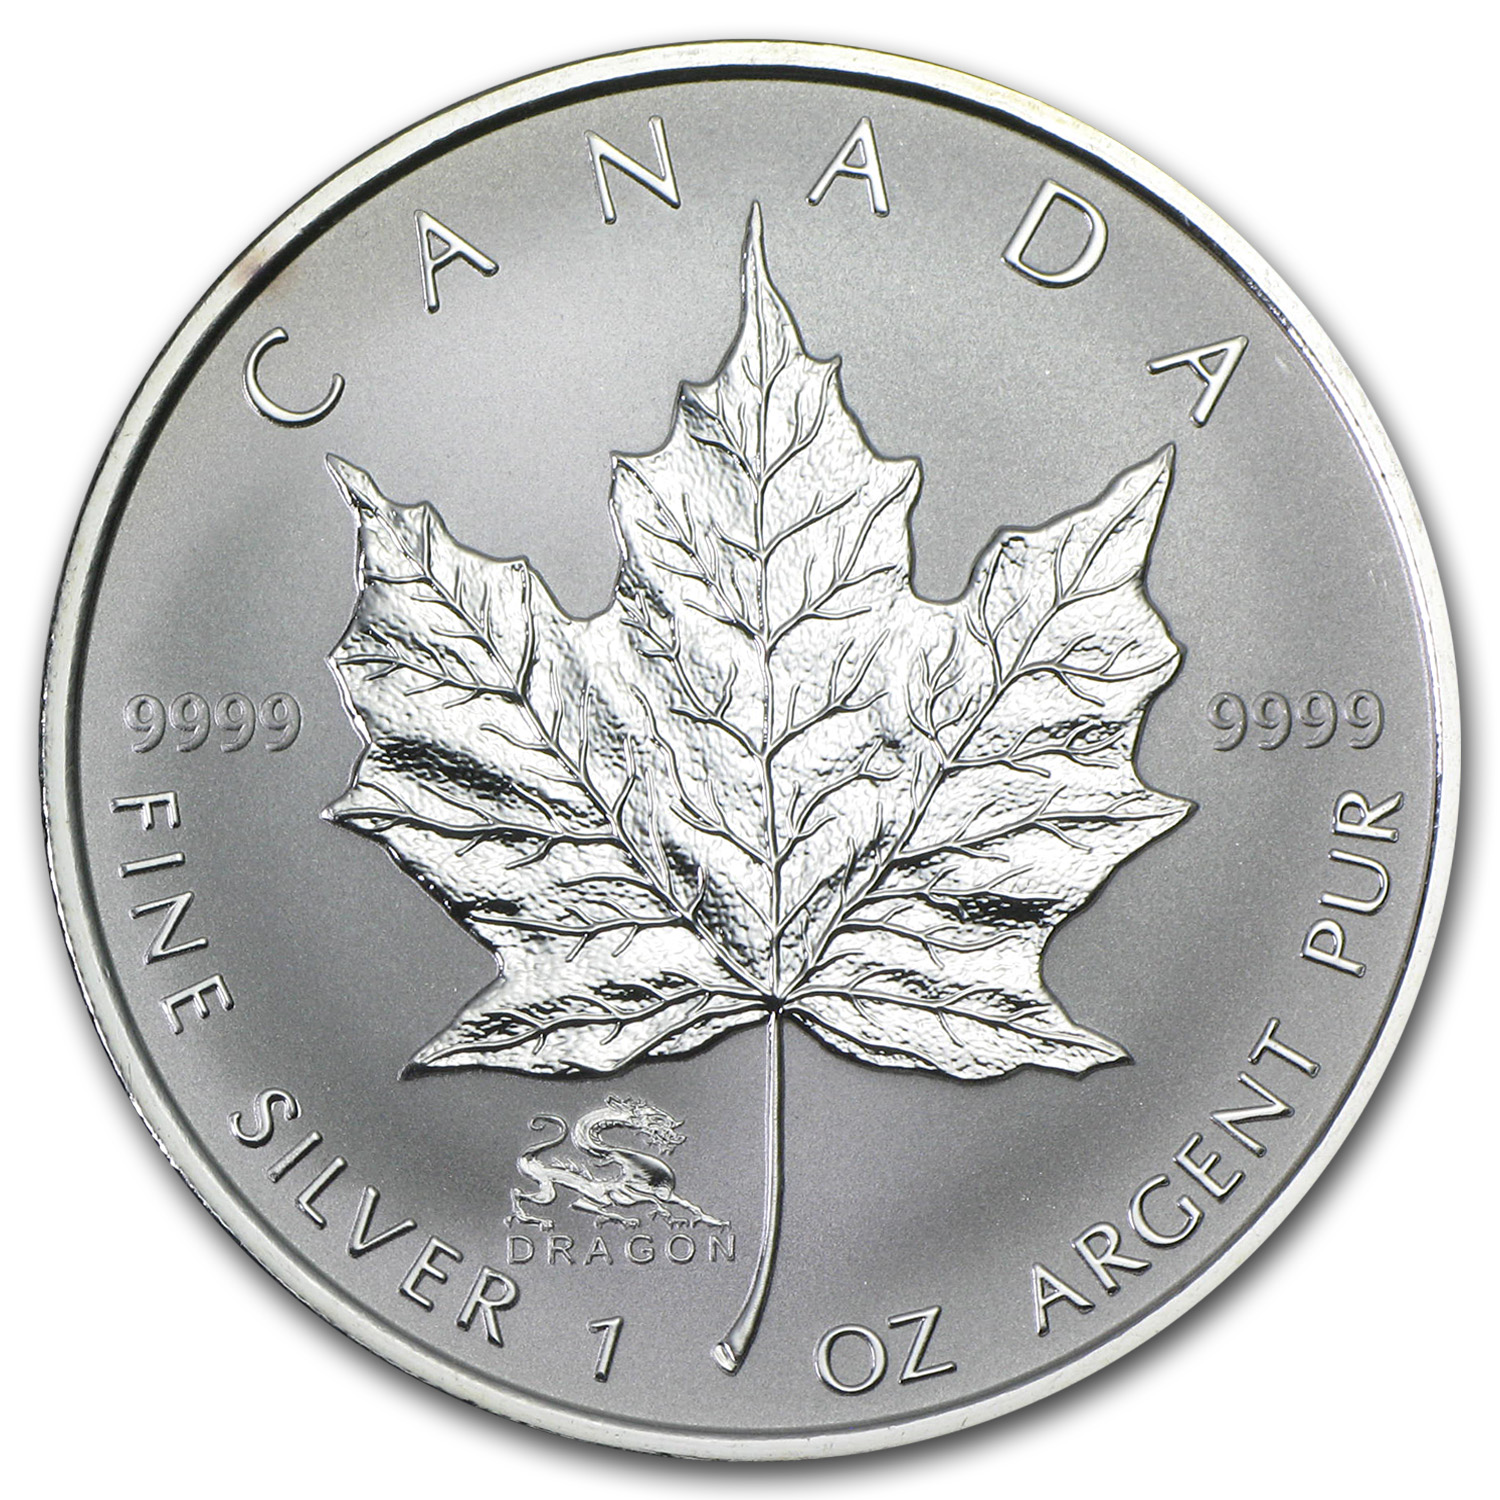 2000 Canada 1 oz Silver Maple Leaf Lunar DRAGON Privy